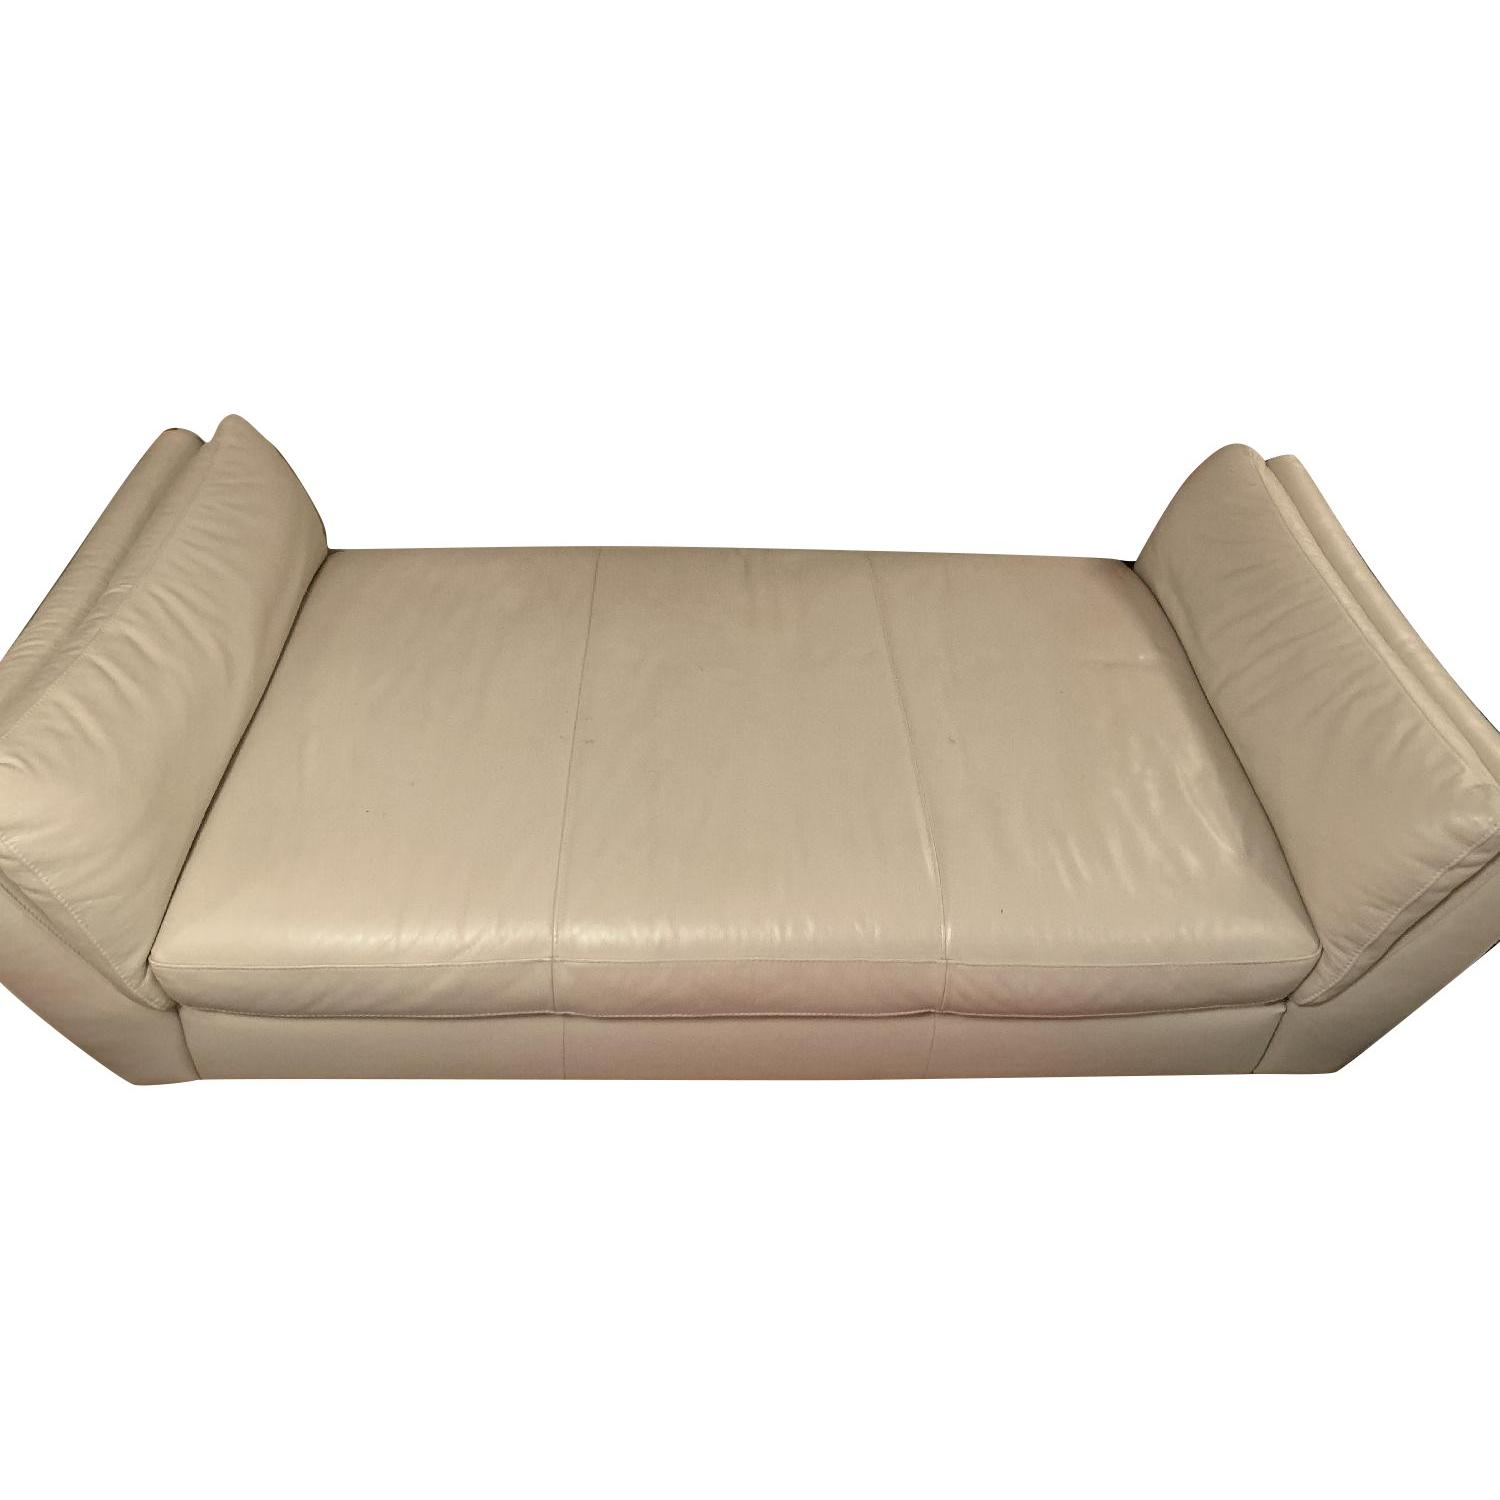 Italsofa Cream Leather Daybed/Chaise Lounge